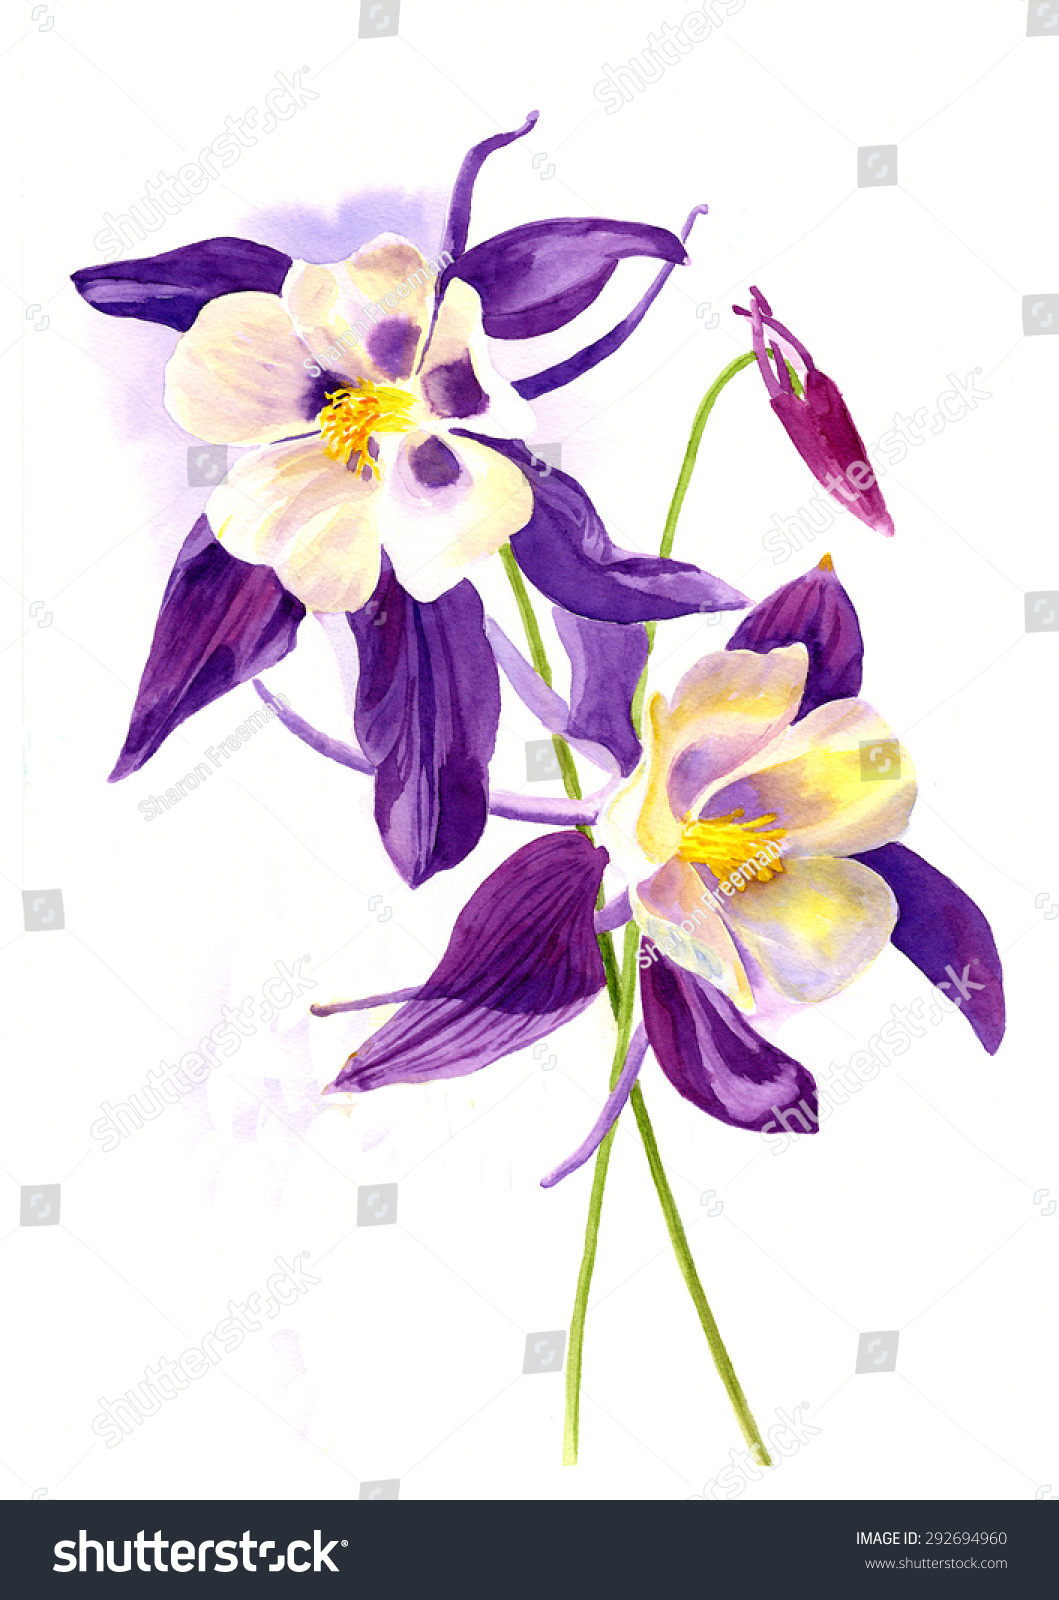 Two purple columbine flowers watercolor painting stock illustration two purple columbine flowers watercolor painting hand painted illustration style with white background izmirmasajfo